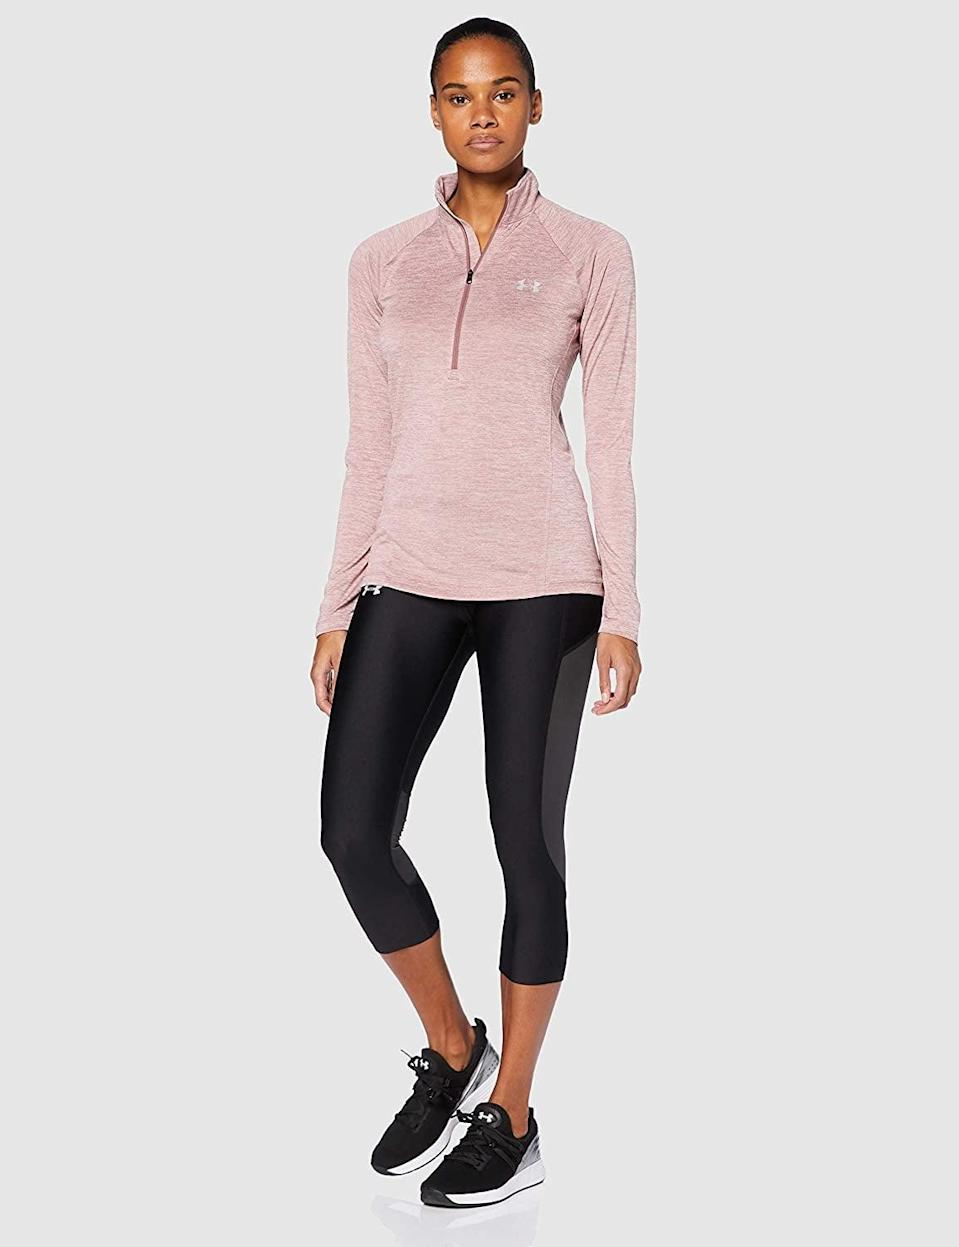 <p>Get this <span>Under Armour Tech Twist Zip Long Sleeve Pullover</span> ($29-$72) in your favorite color.</p>